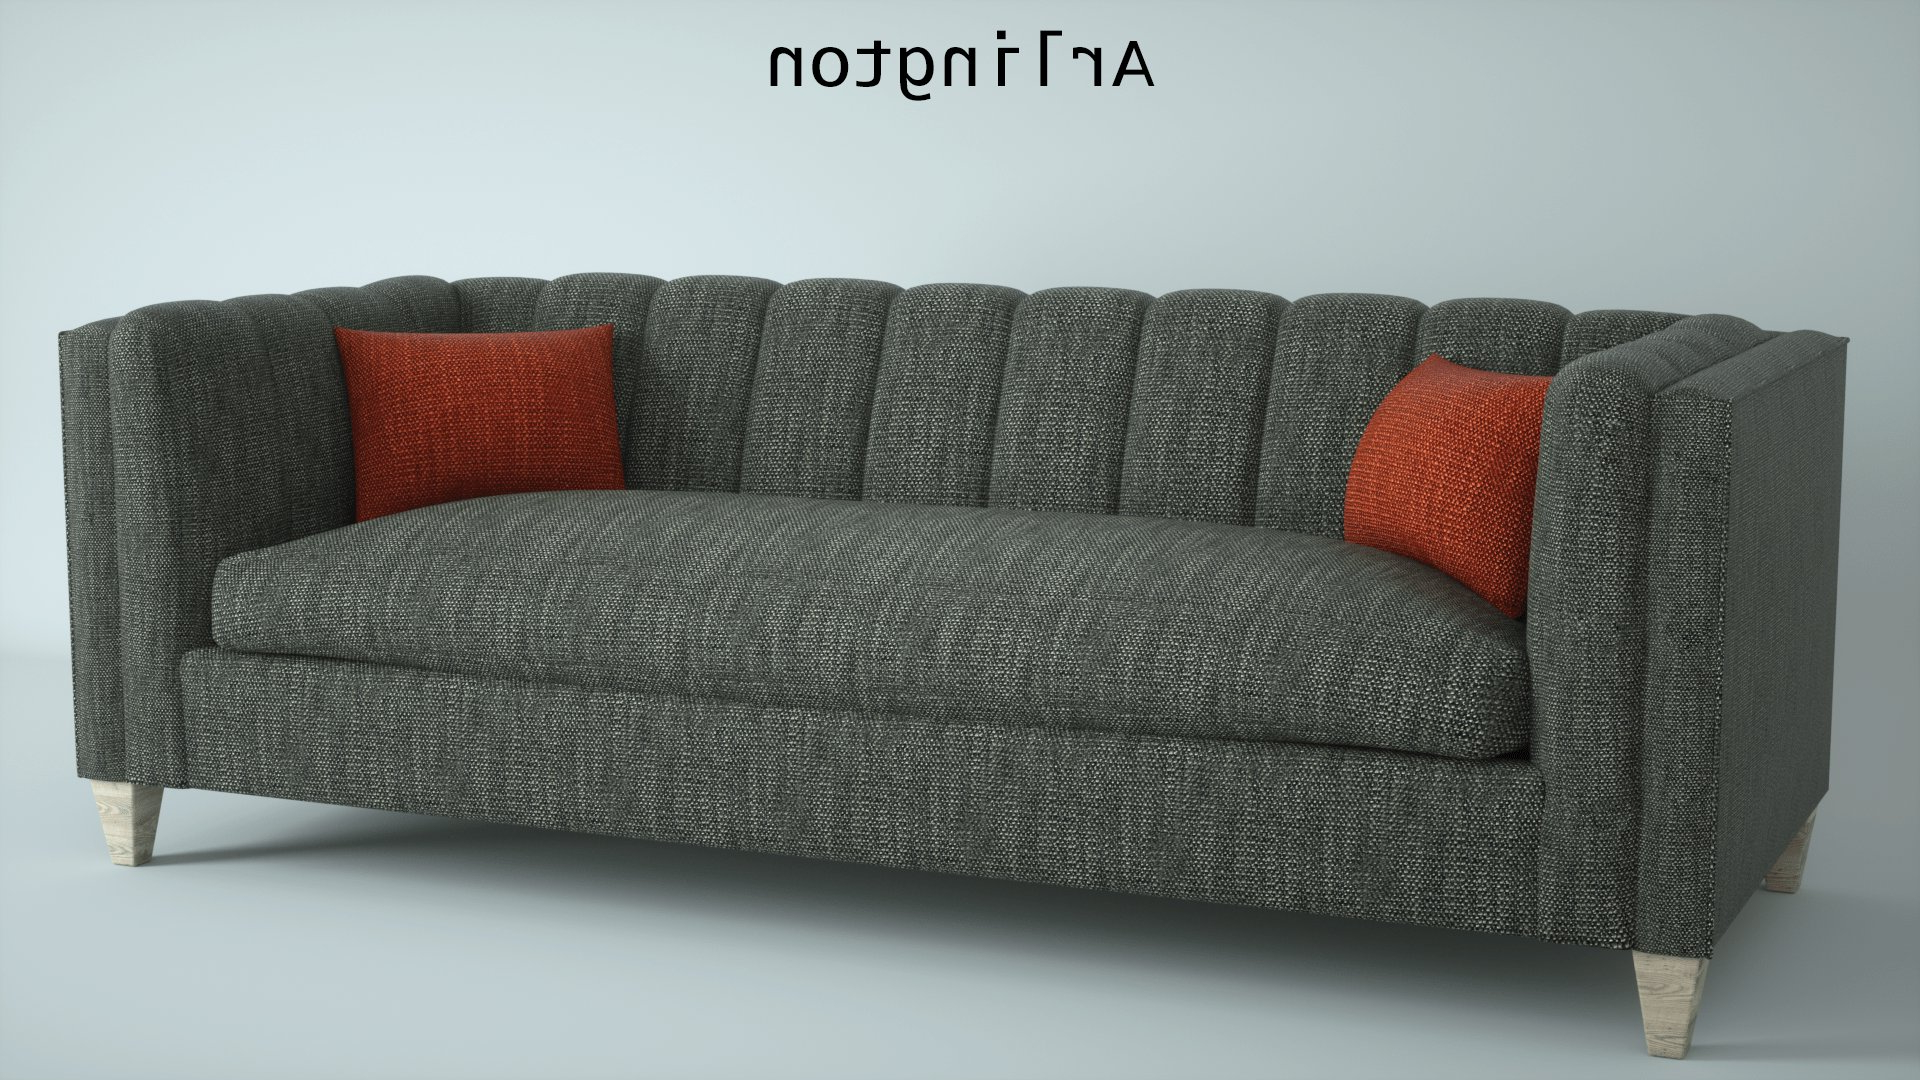 2 Piece Sectionals With Chaise Beautiful Sofas Sugar Hill Intended For Most Current Aquarius Light Grey 2 Piece Sectionals With Laf Chaise (Gallery 18 of 20)